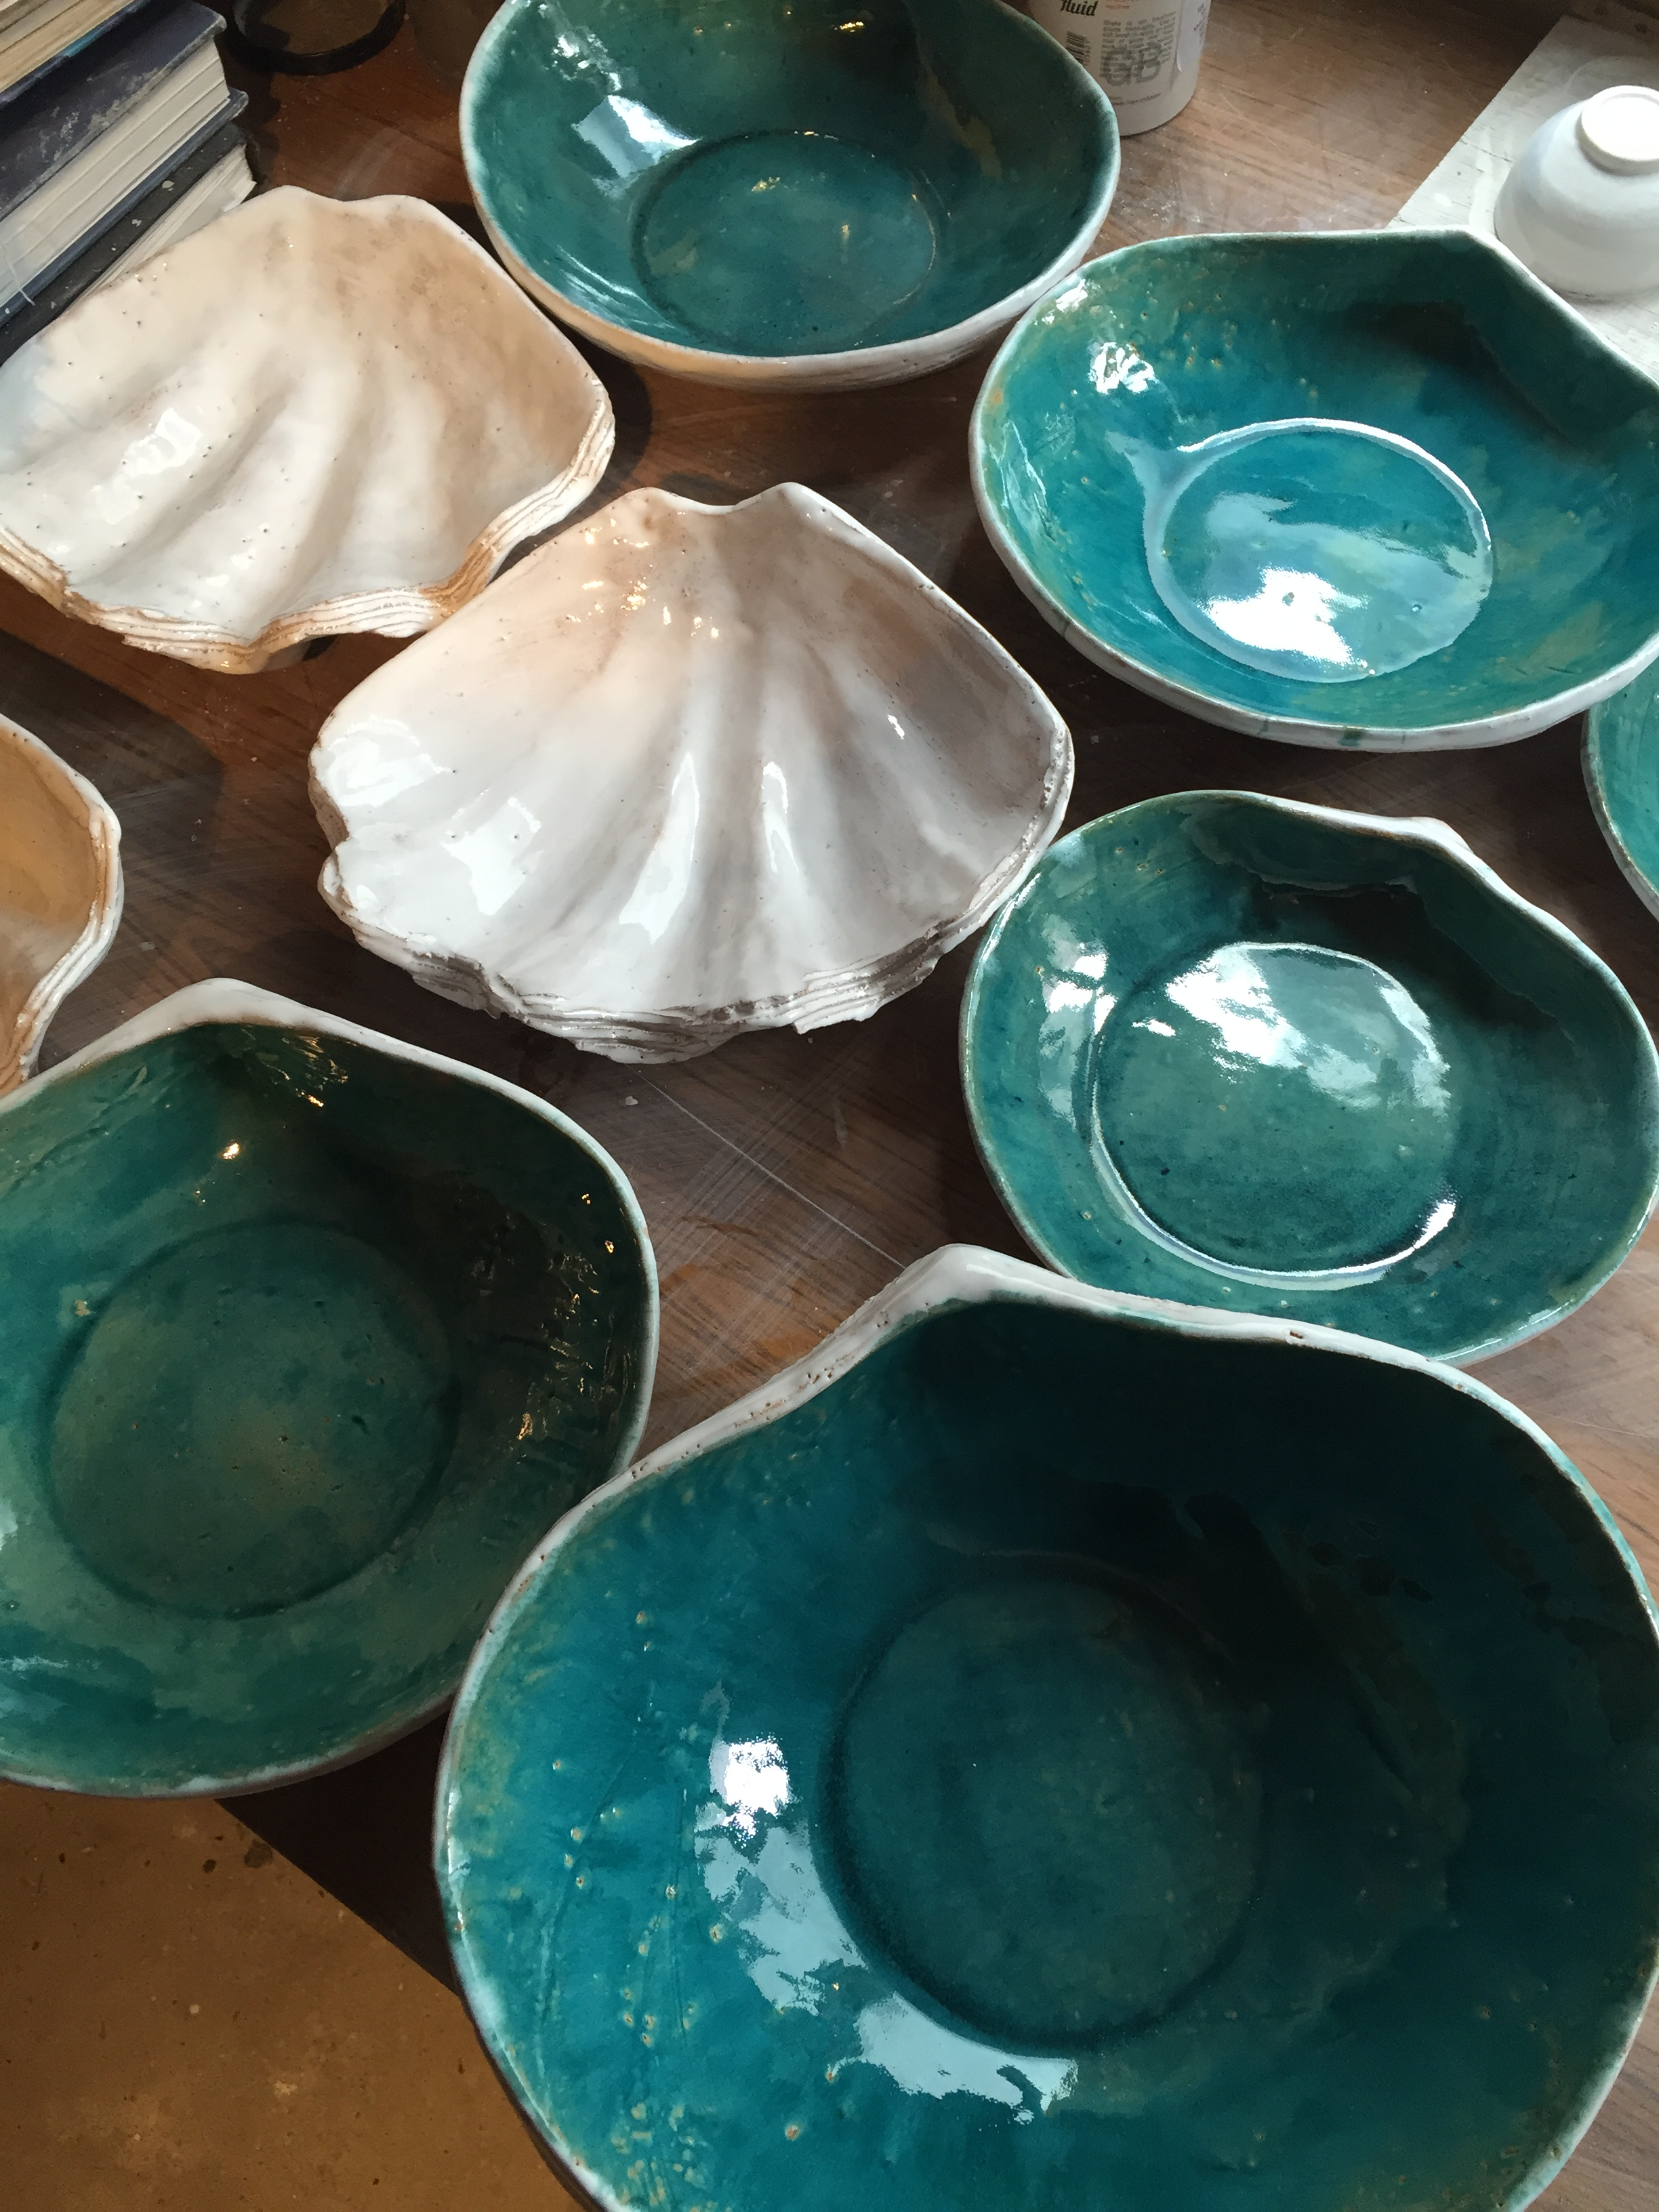 Turquoise Shell Dishes and White Clams